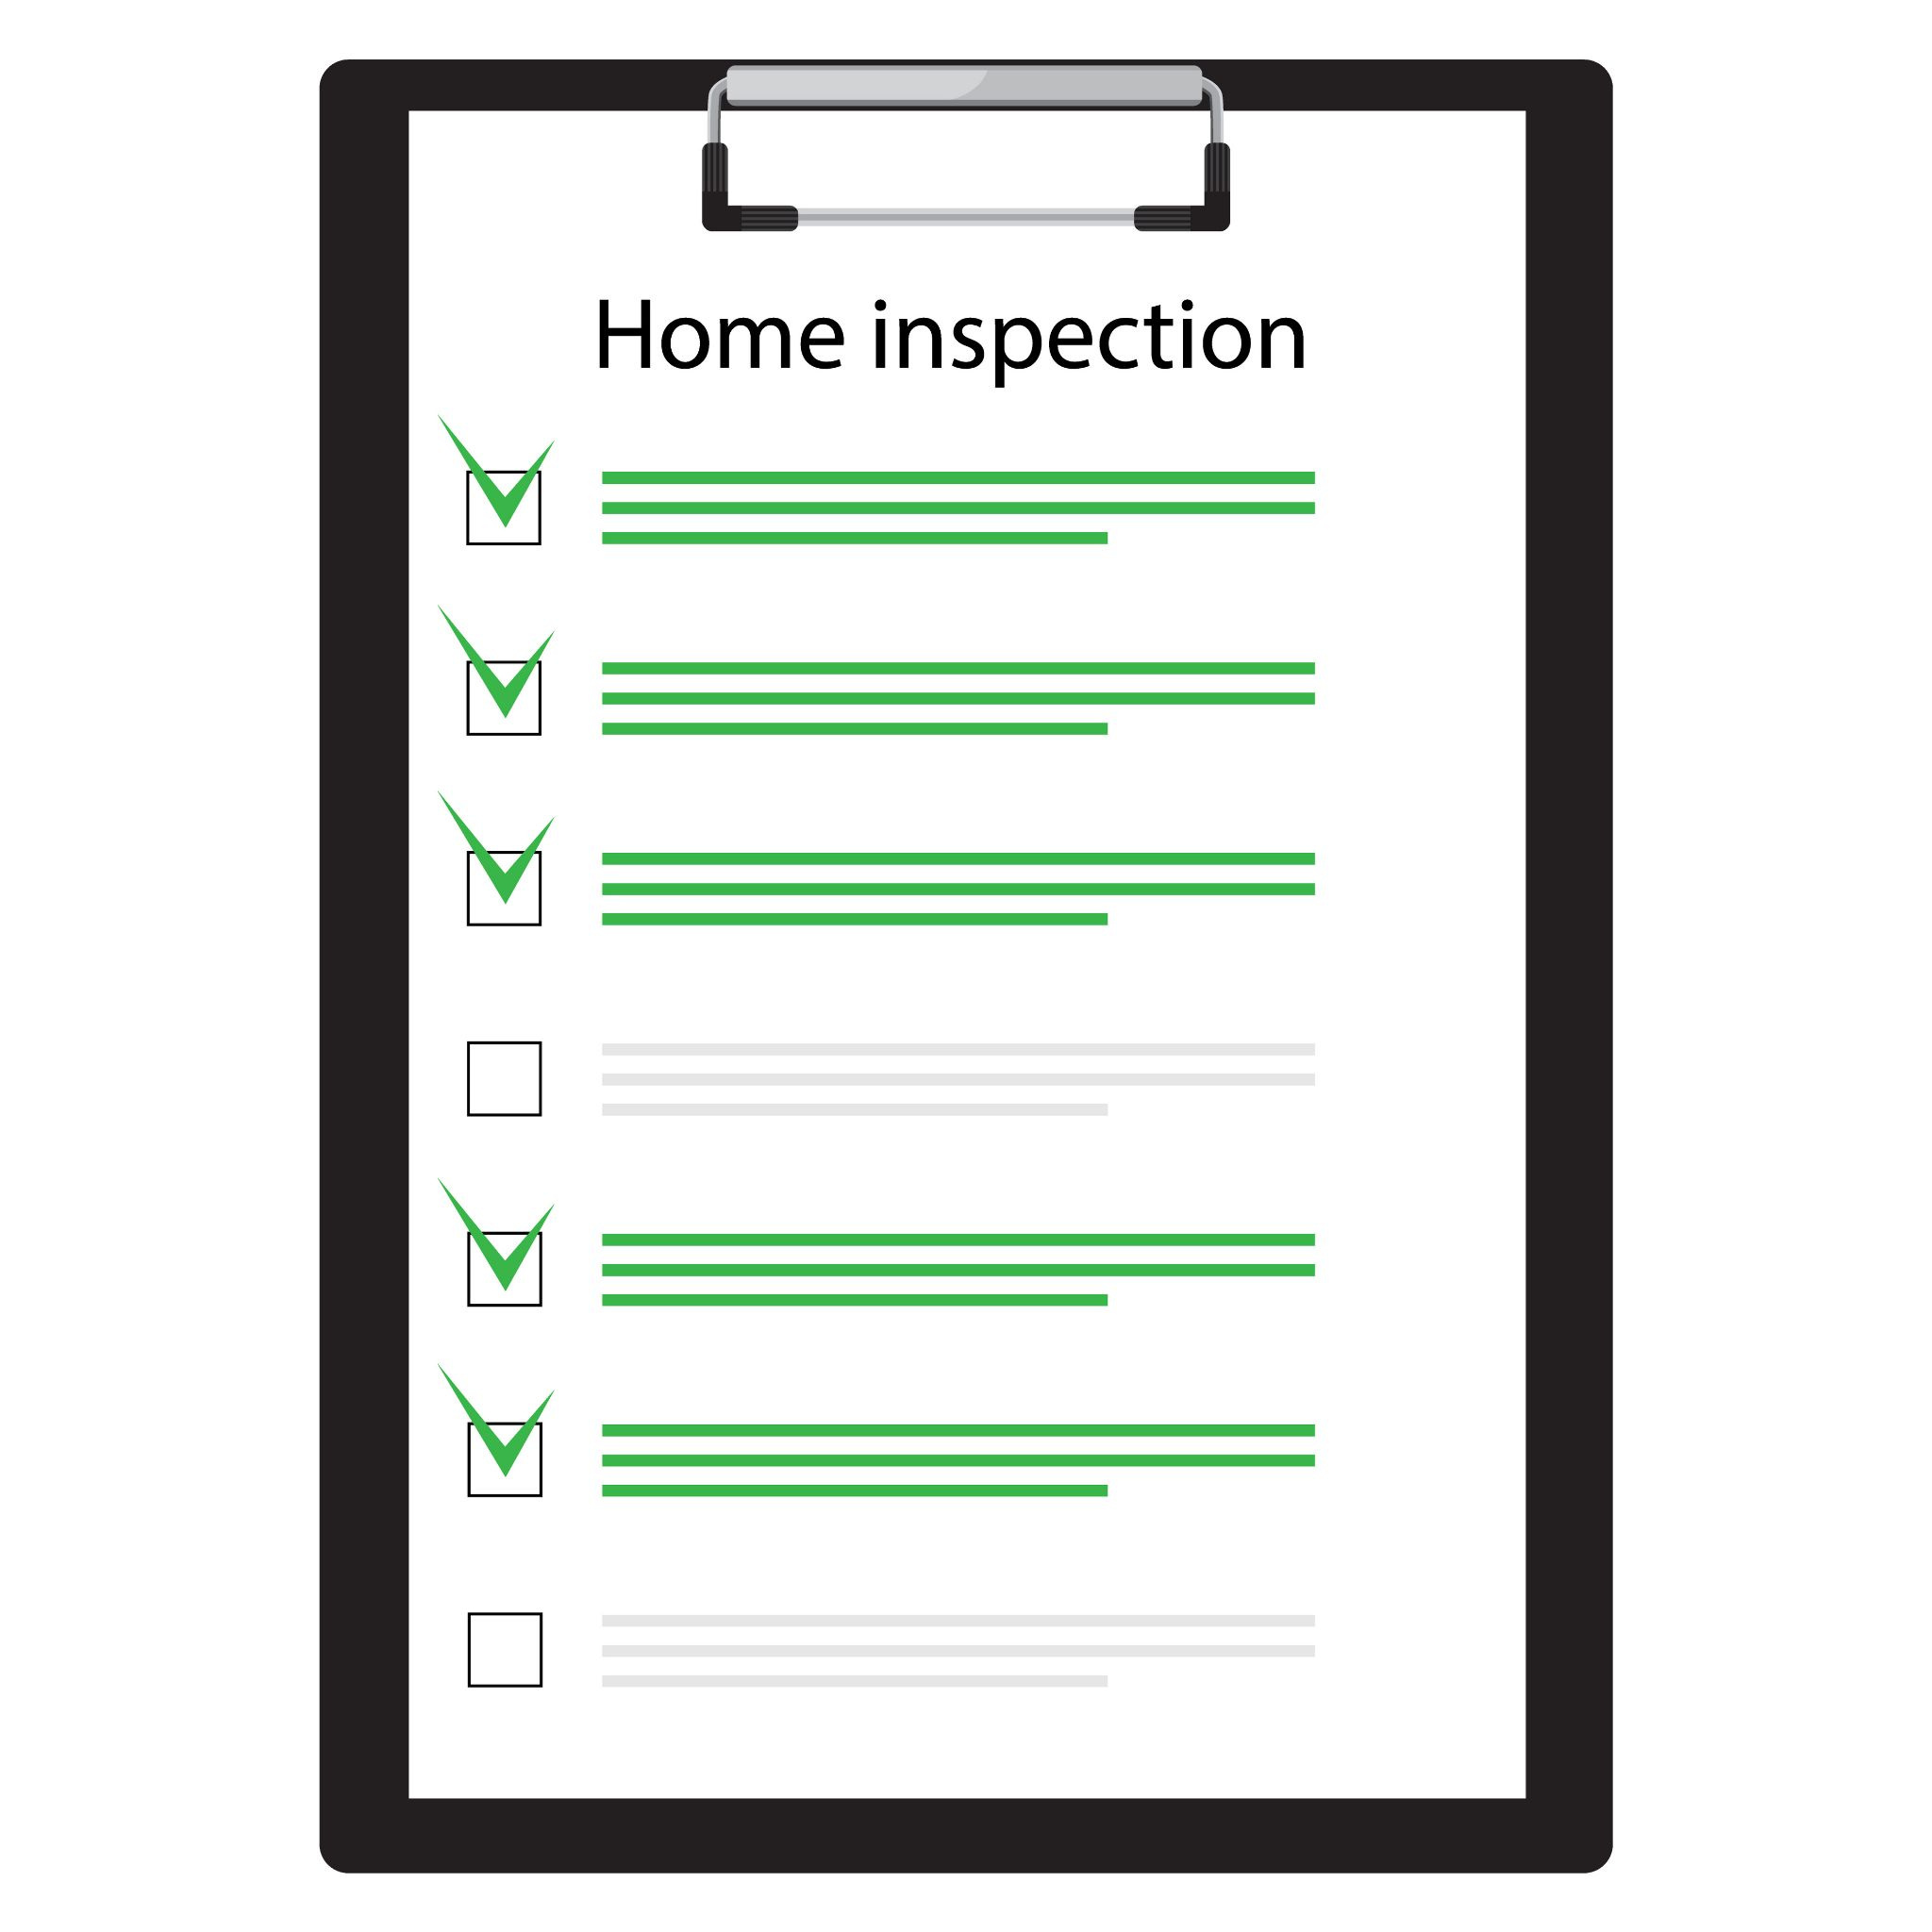 Home inspection check sheet graphic.